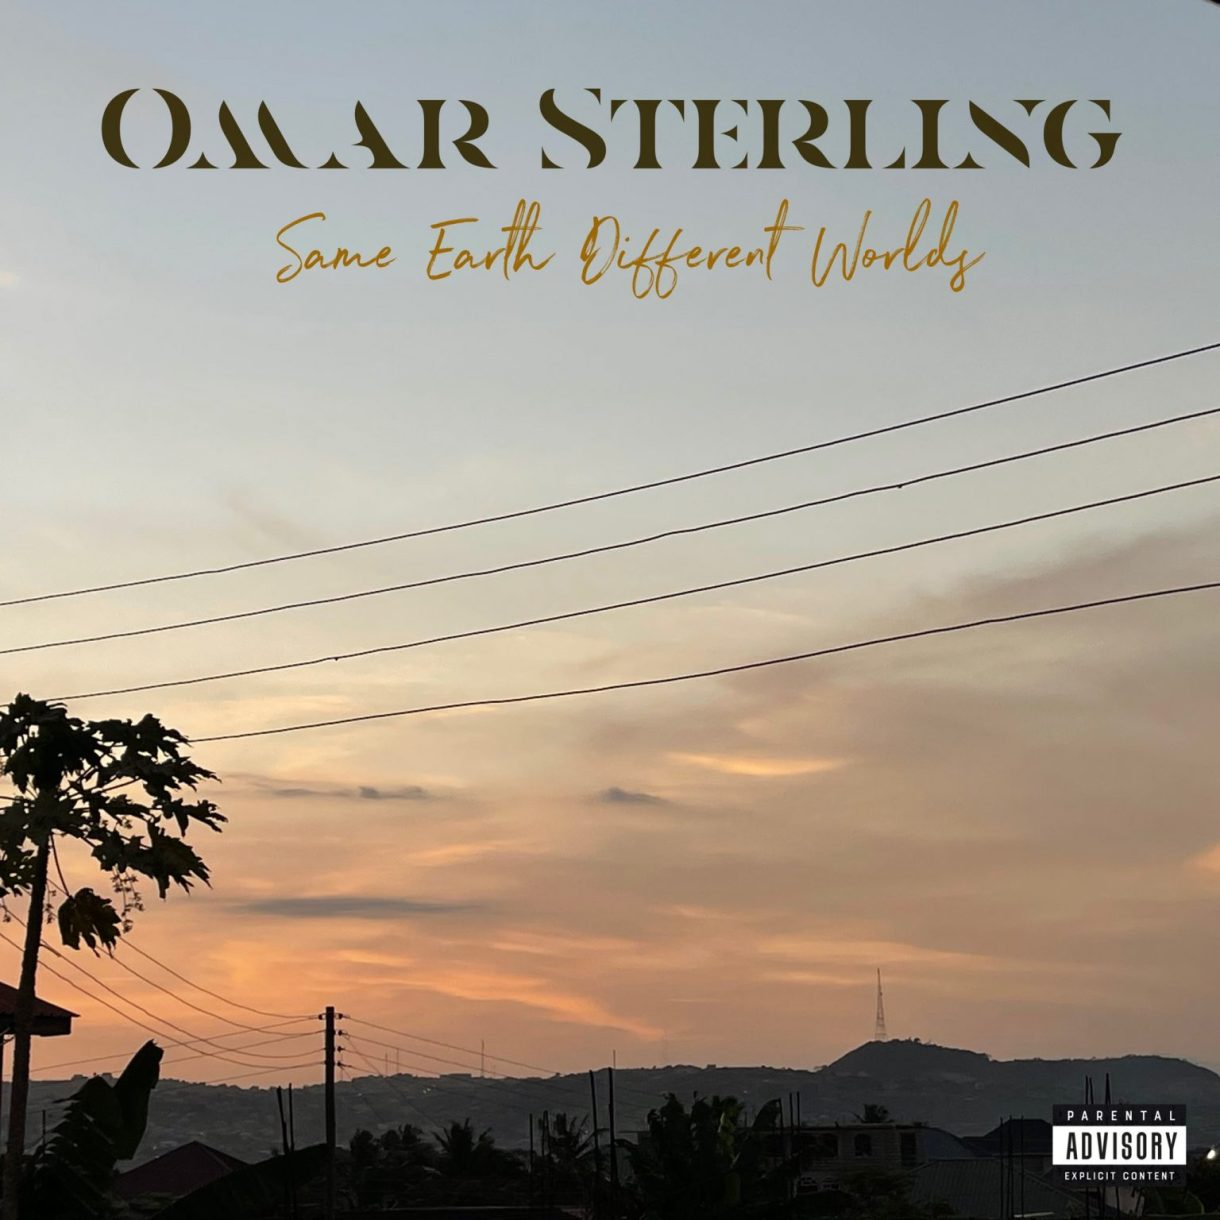 Omar Sterling - 18yrs (Same Earth Differents Worlds)